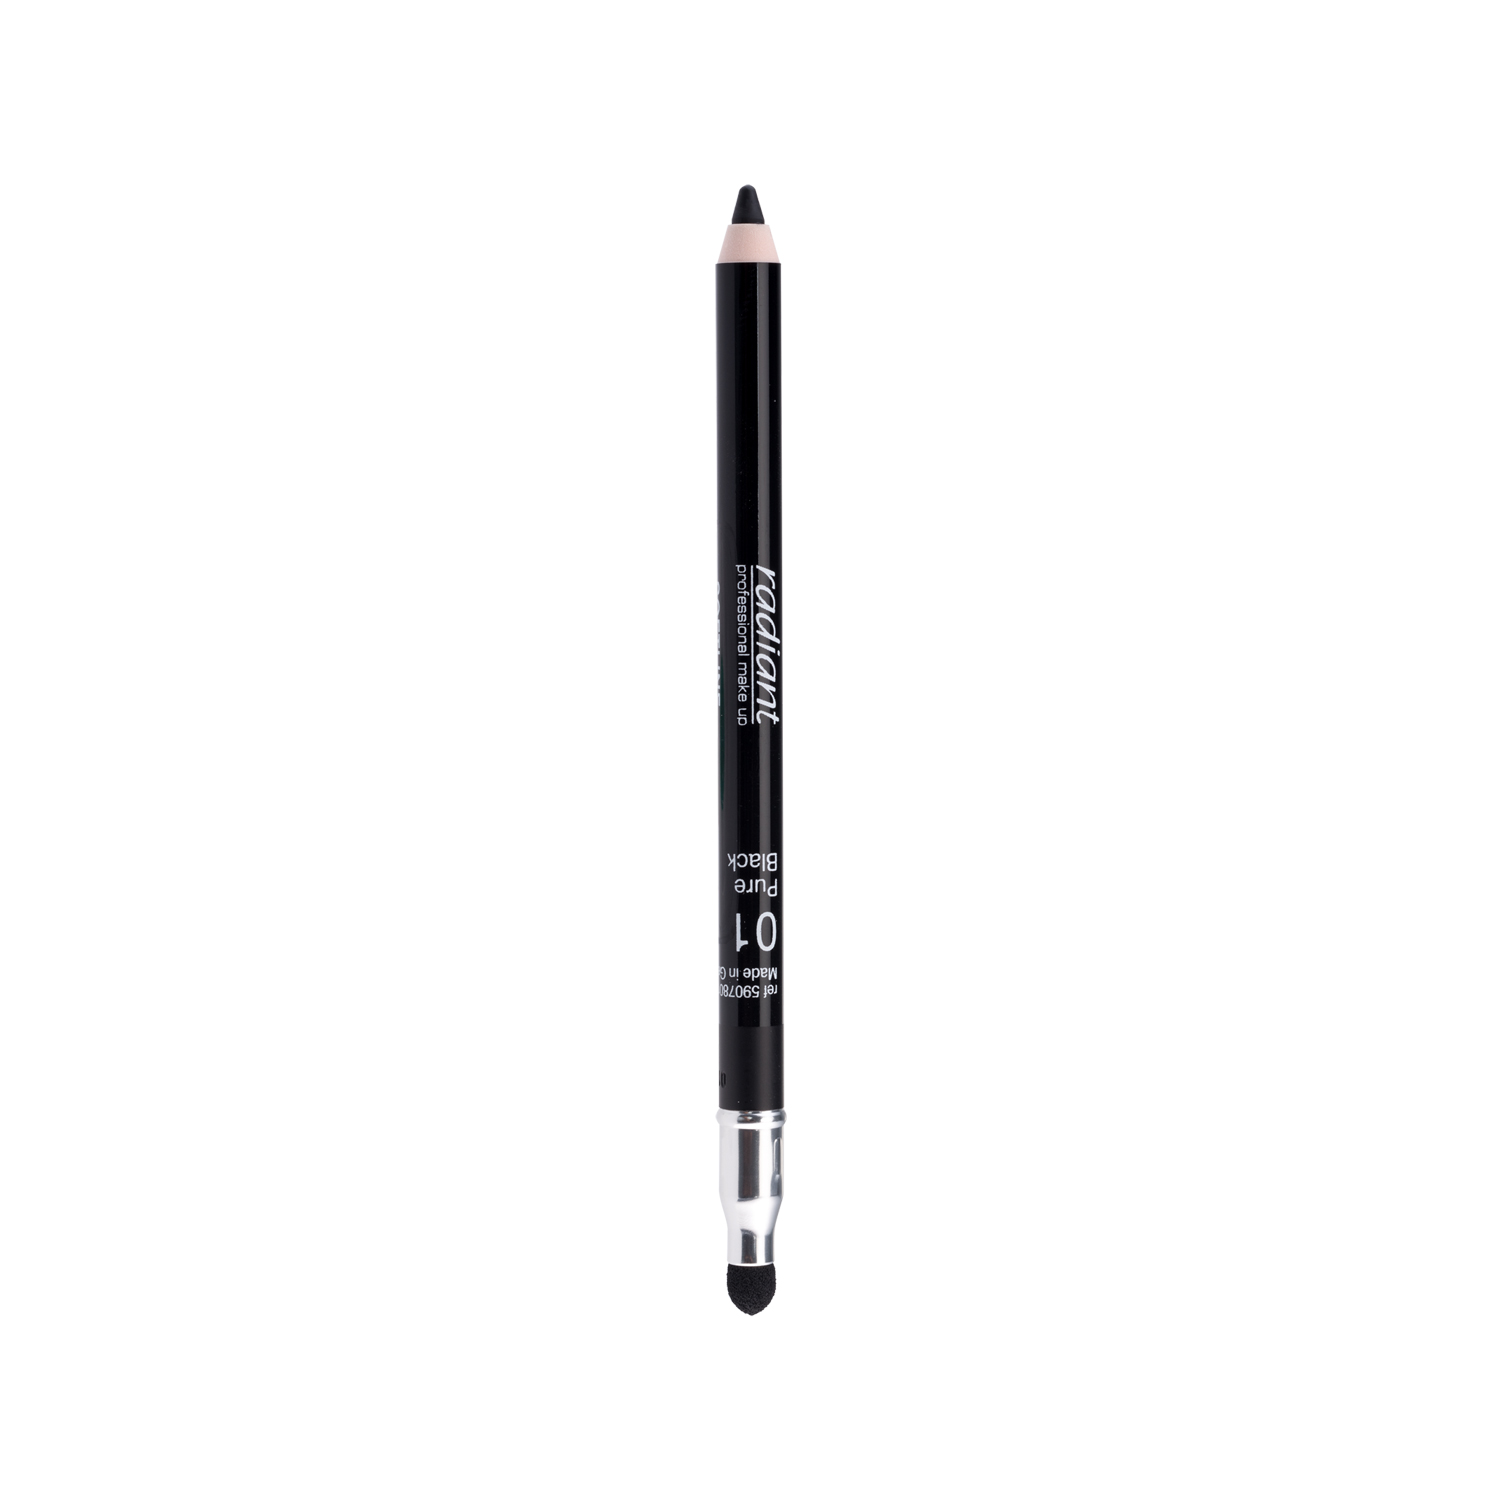 SOFTLINE WATERPROOF EYE PENCIL (01 Pure Black)